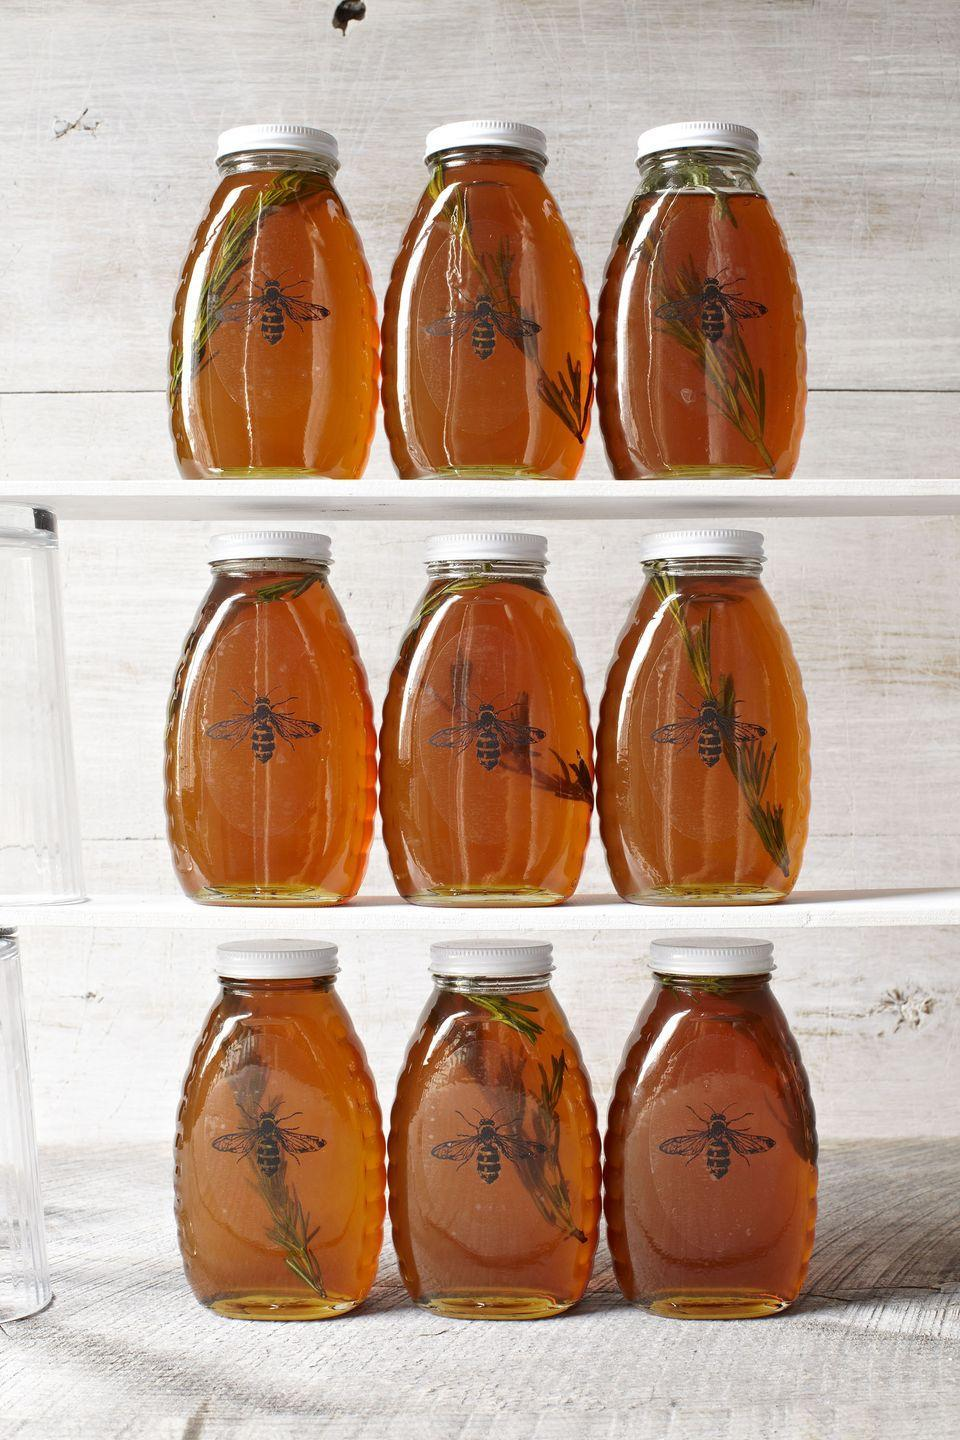 """<p>For an inspired upgrade to your standard jar of the good stuff, try infusing it with a few sprigs of rosemary—or any favorite herb.</p><p><strong><a href=""""https://www.countryliving.com/food-drinks/recipes/a6162/rosemary-honey-recipe-clv1212/"""" rel=""""nofollow noopener"""" target=""""_blank"""" data-ylk=""""slk:Get the recipe"""" class=""""link rapid-noclick-resp"""">Get the recipe</a>.</strong></p>"""